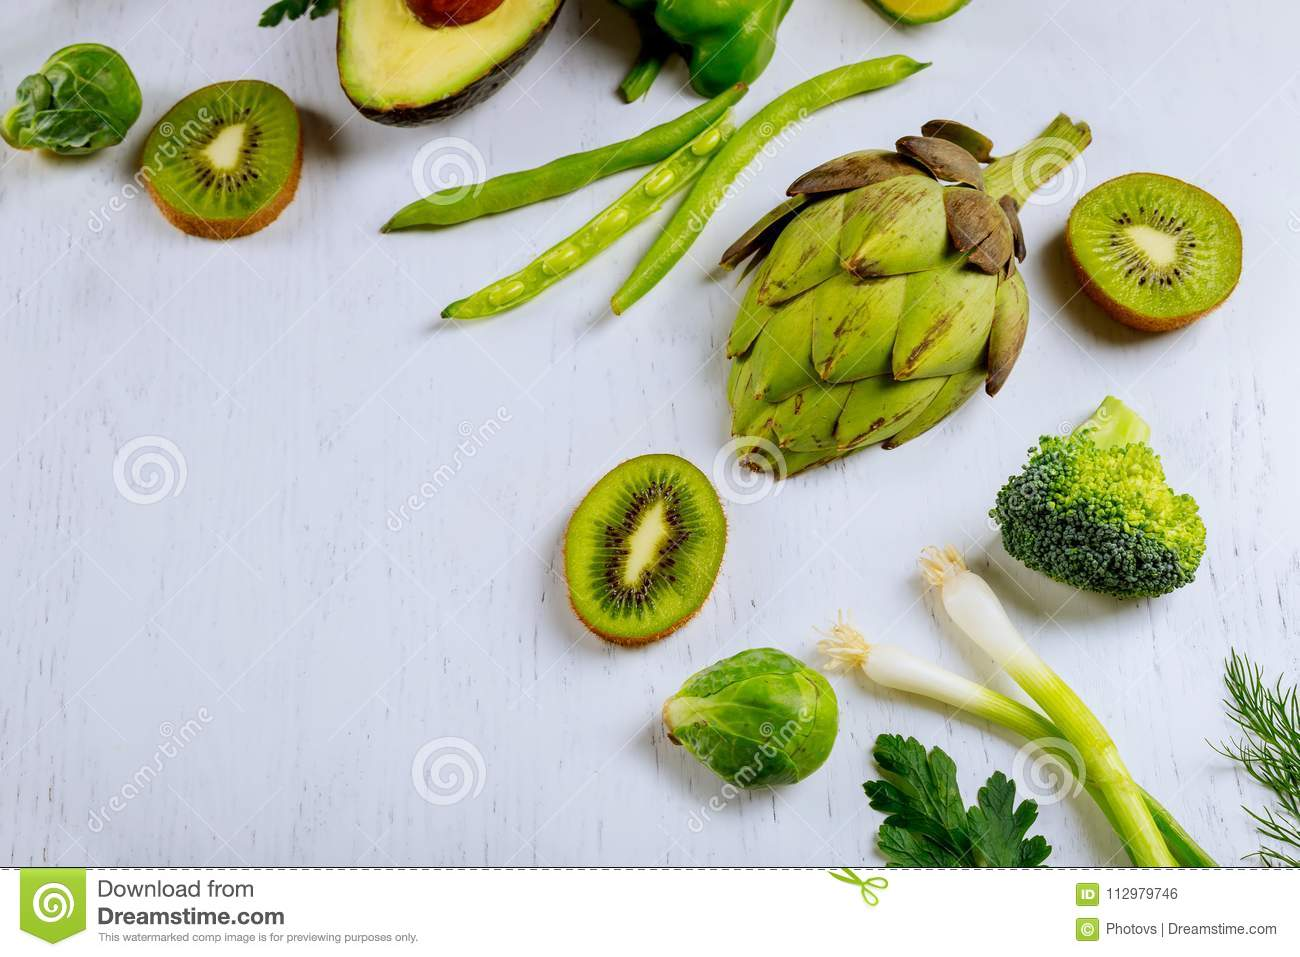 Variety of raw green vegetables salads, lettuce, bok choy, corn, broccoli, savoy cabbage as frame round empty white chopping board